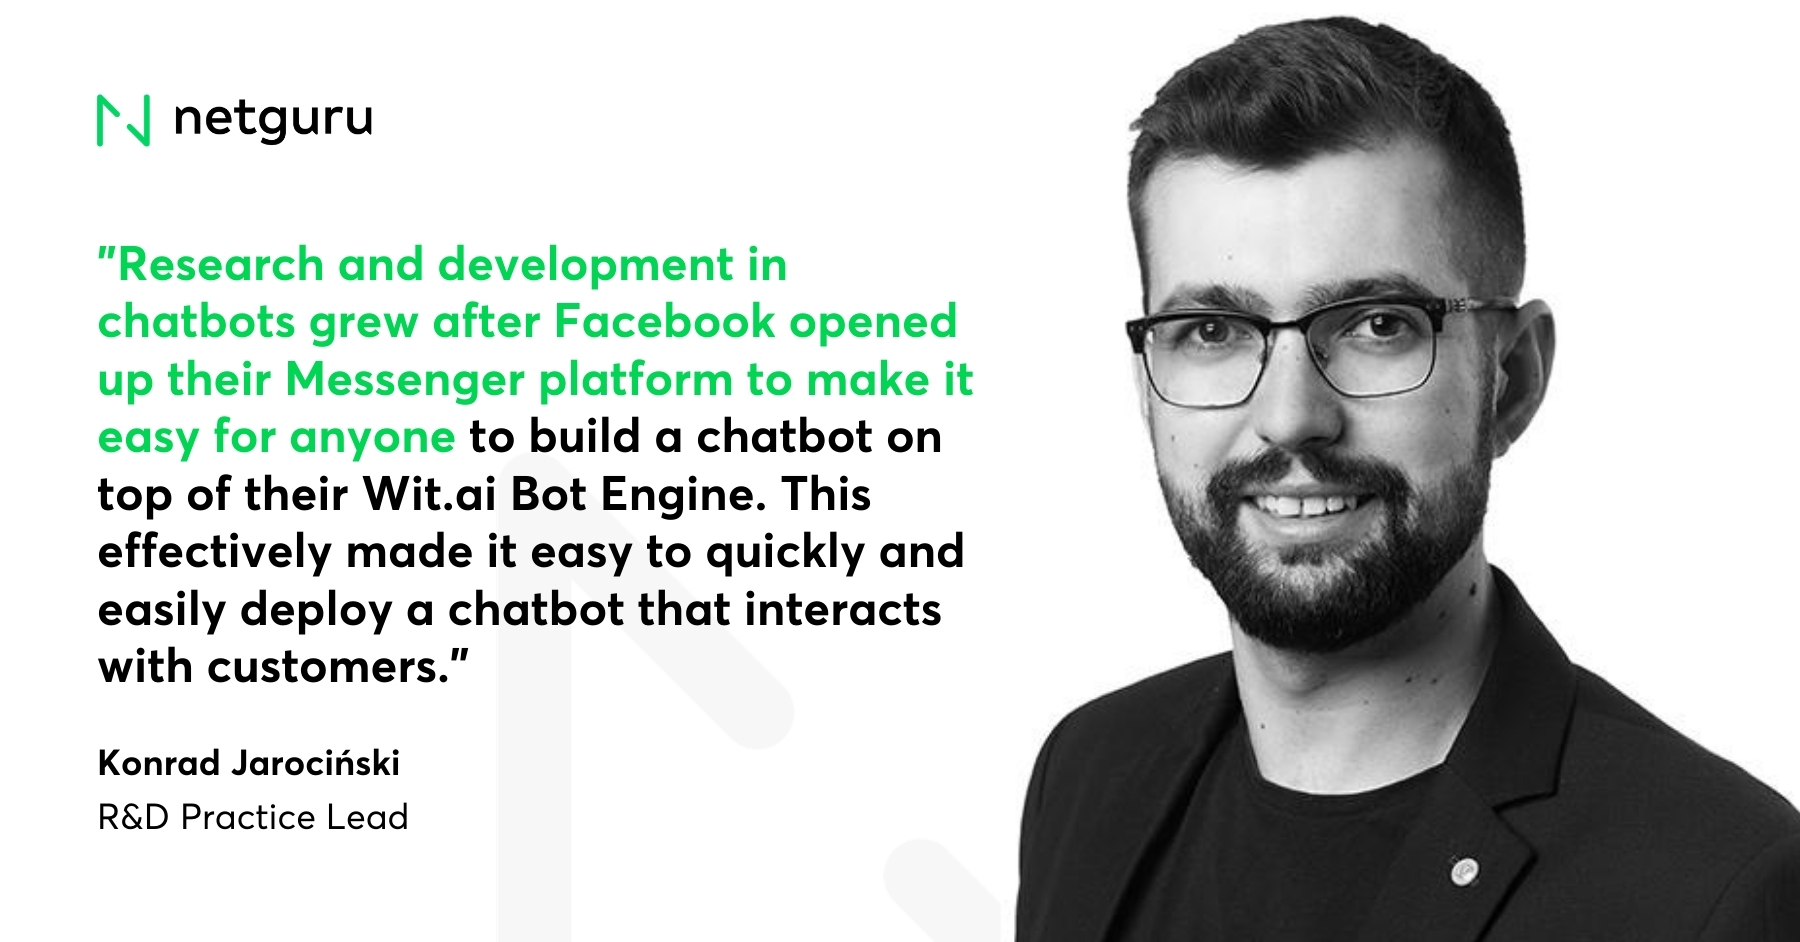 Konrad Jarocinski on Chatbots